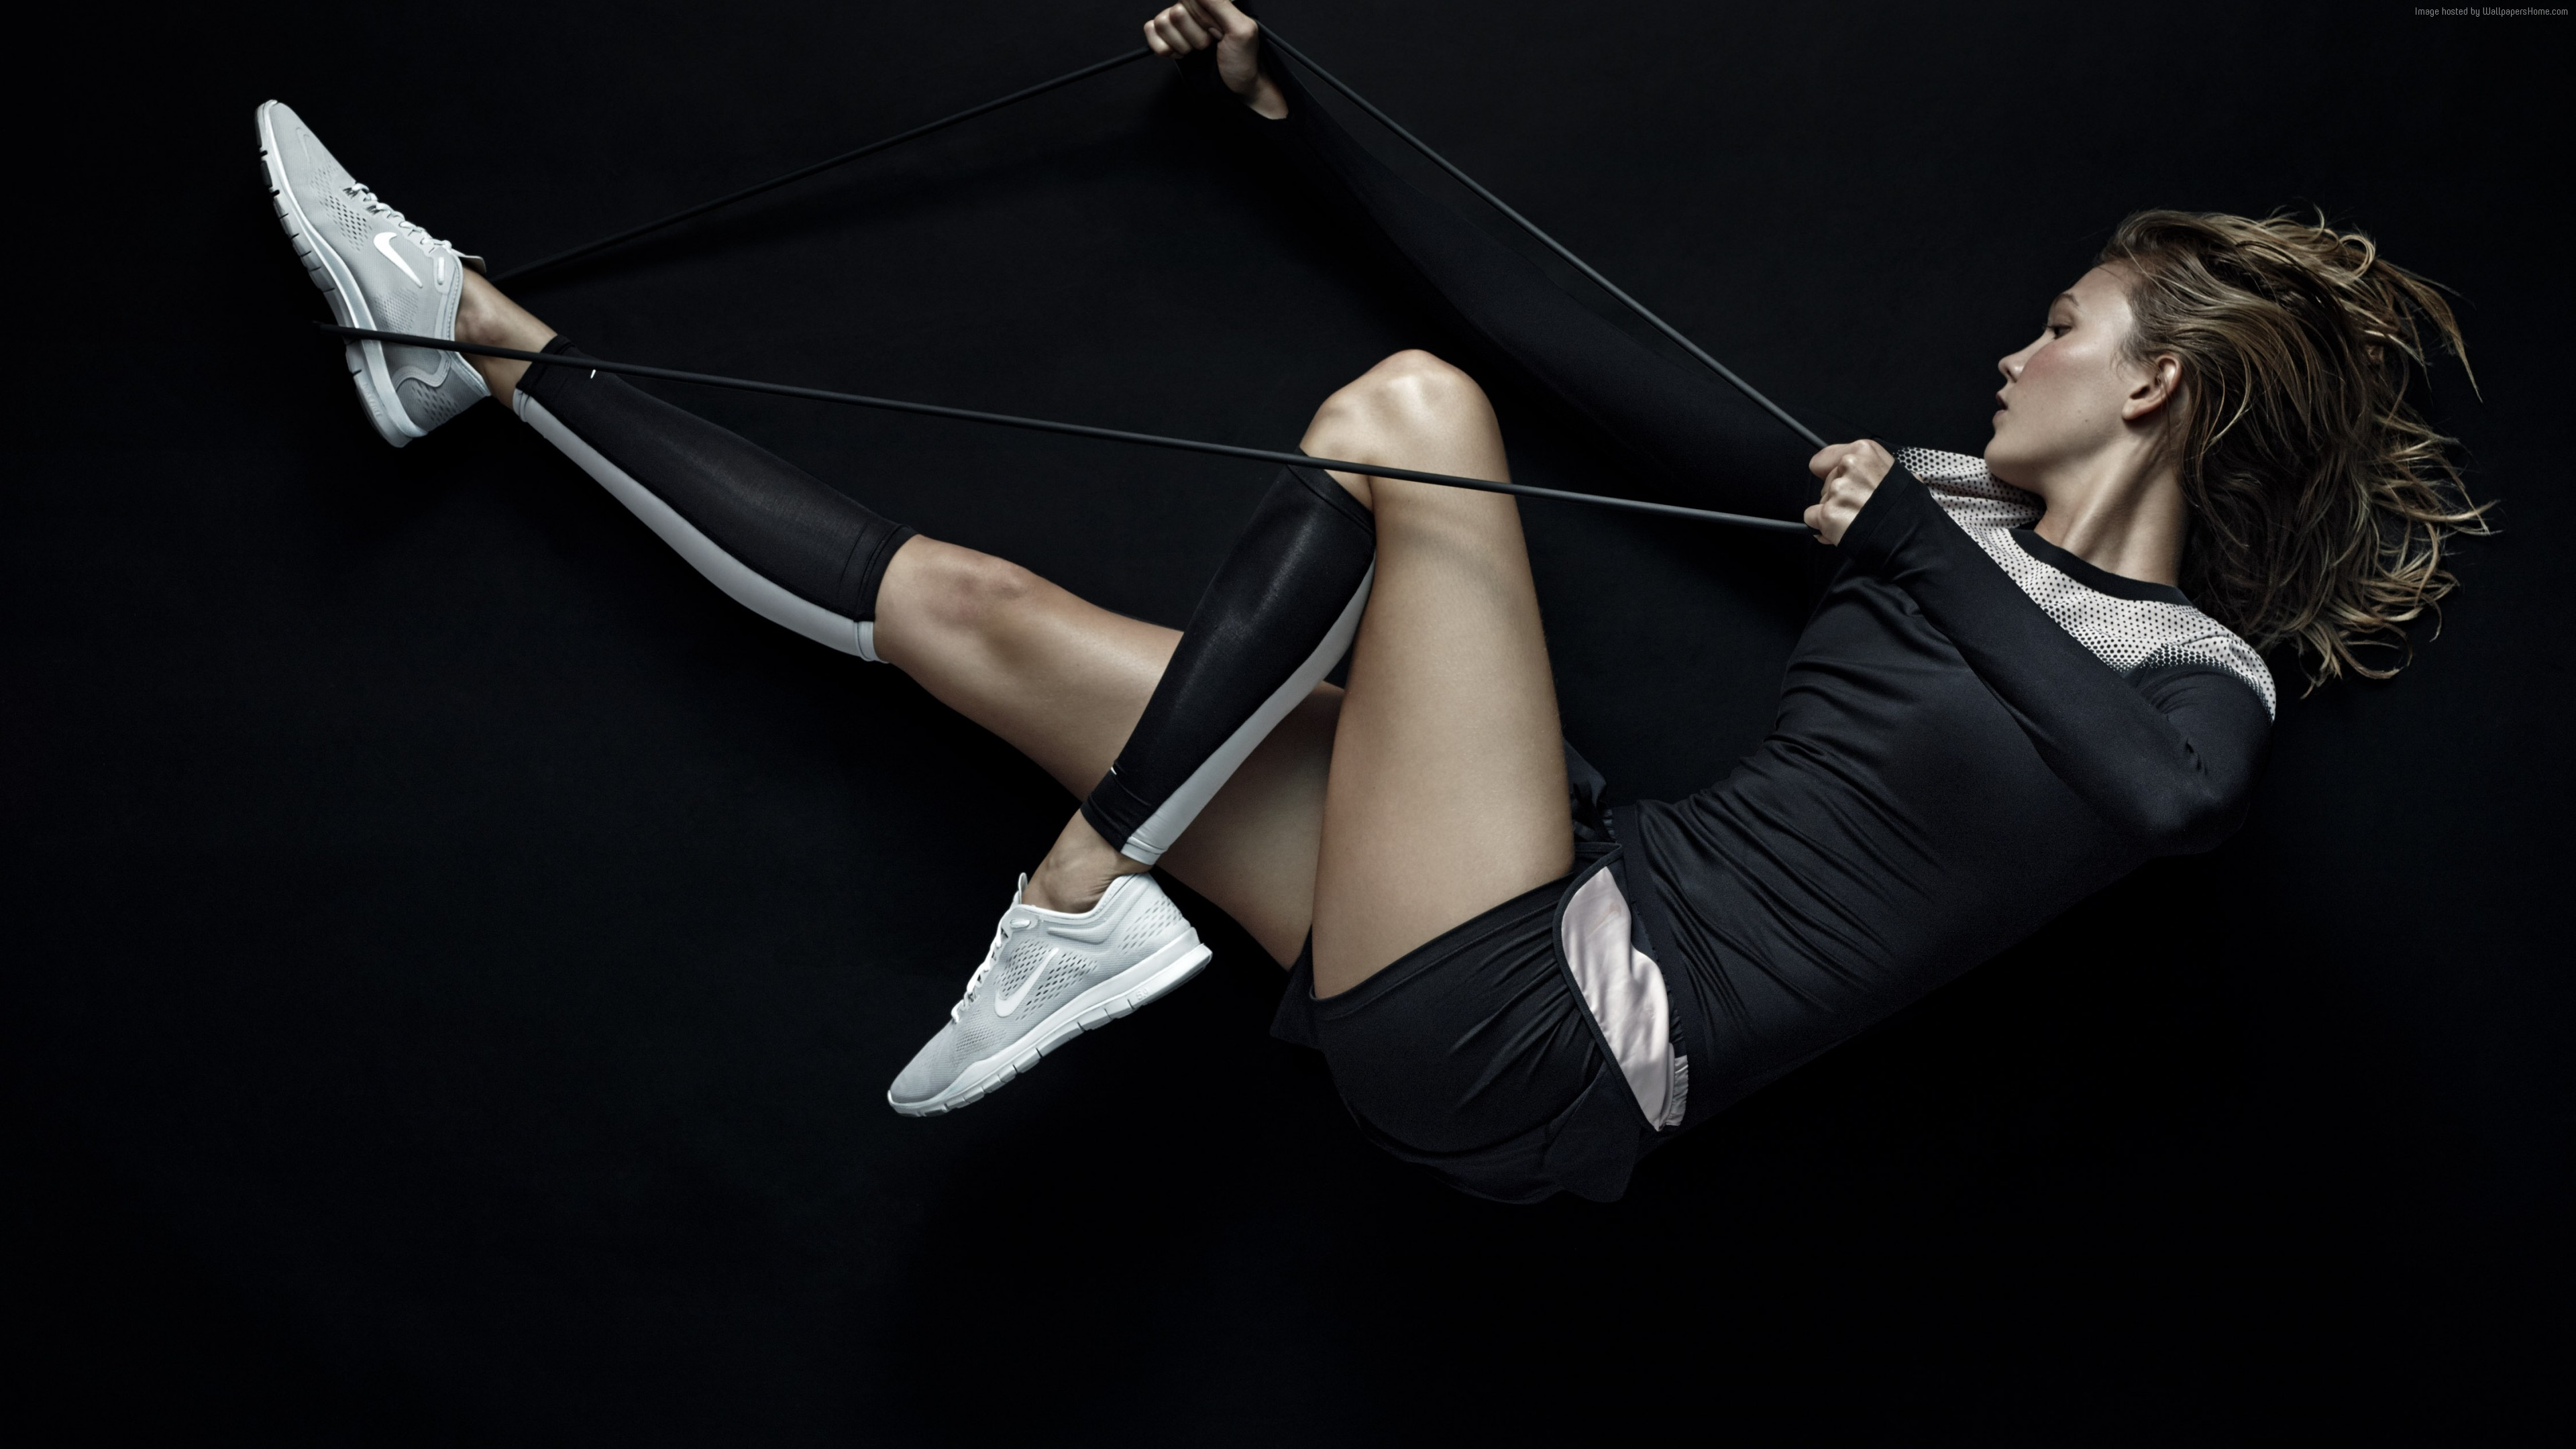 Wallpaper Karlie Kloss, Nike, weight loss, relax, Fitness, Sport